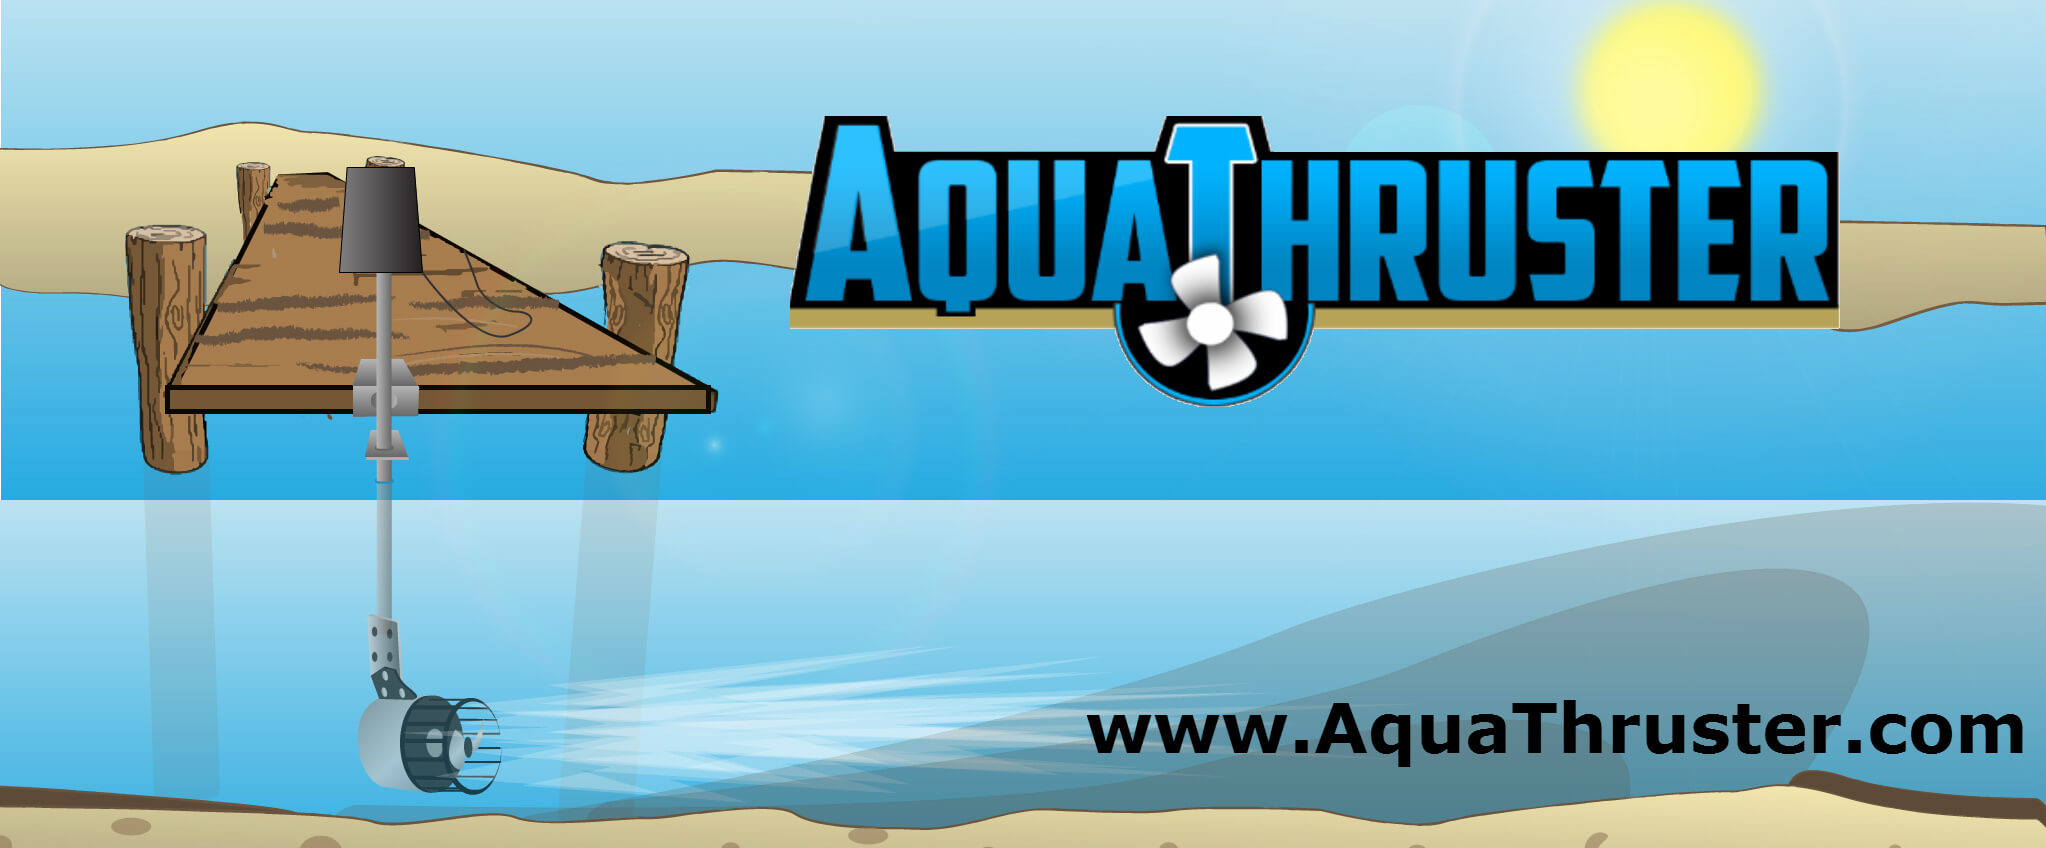 aquathruster-image-for-video.jpg